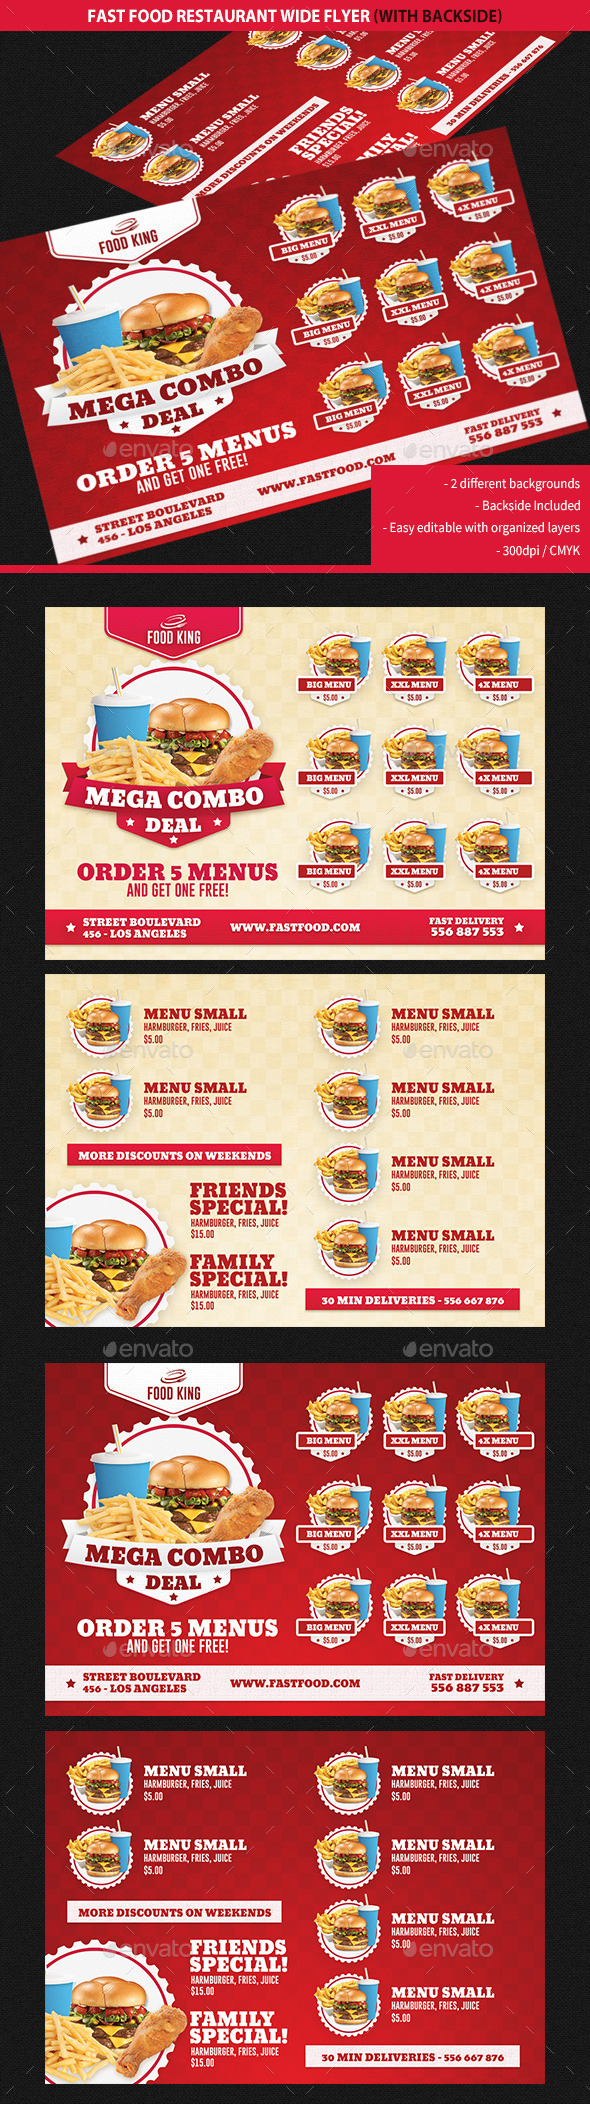 GraphicRiver Restaurant Fast Food Promotions Wide Flyer 9342589